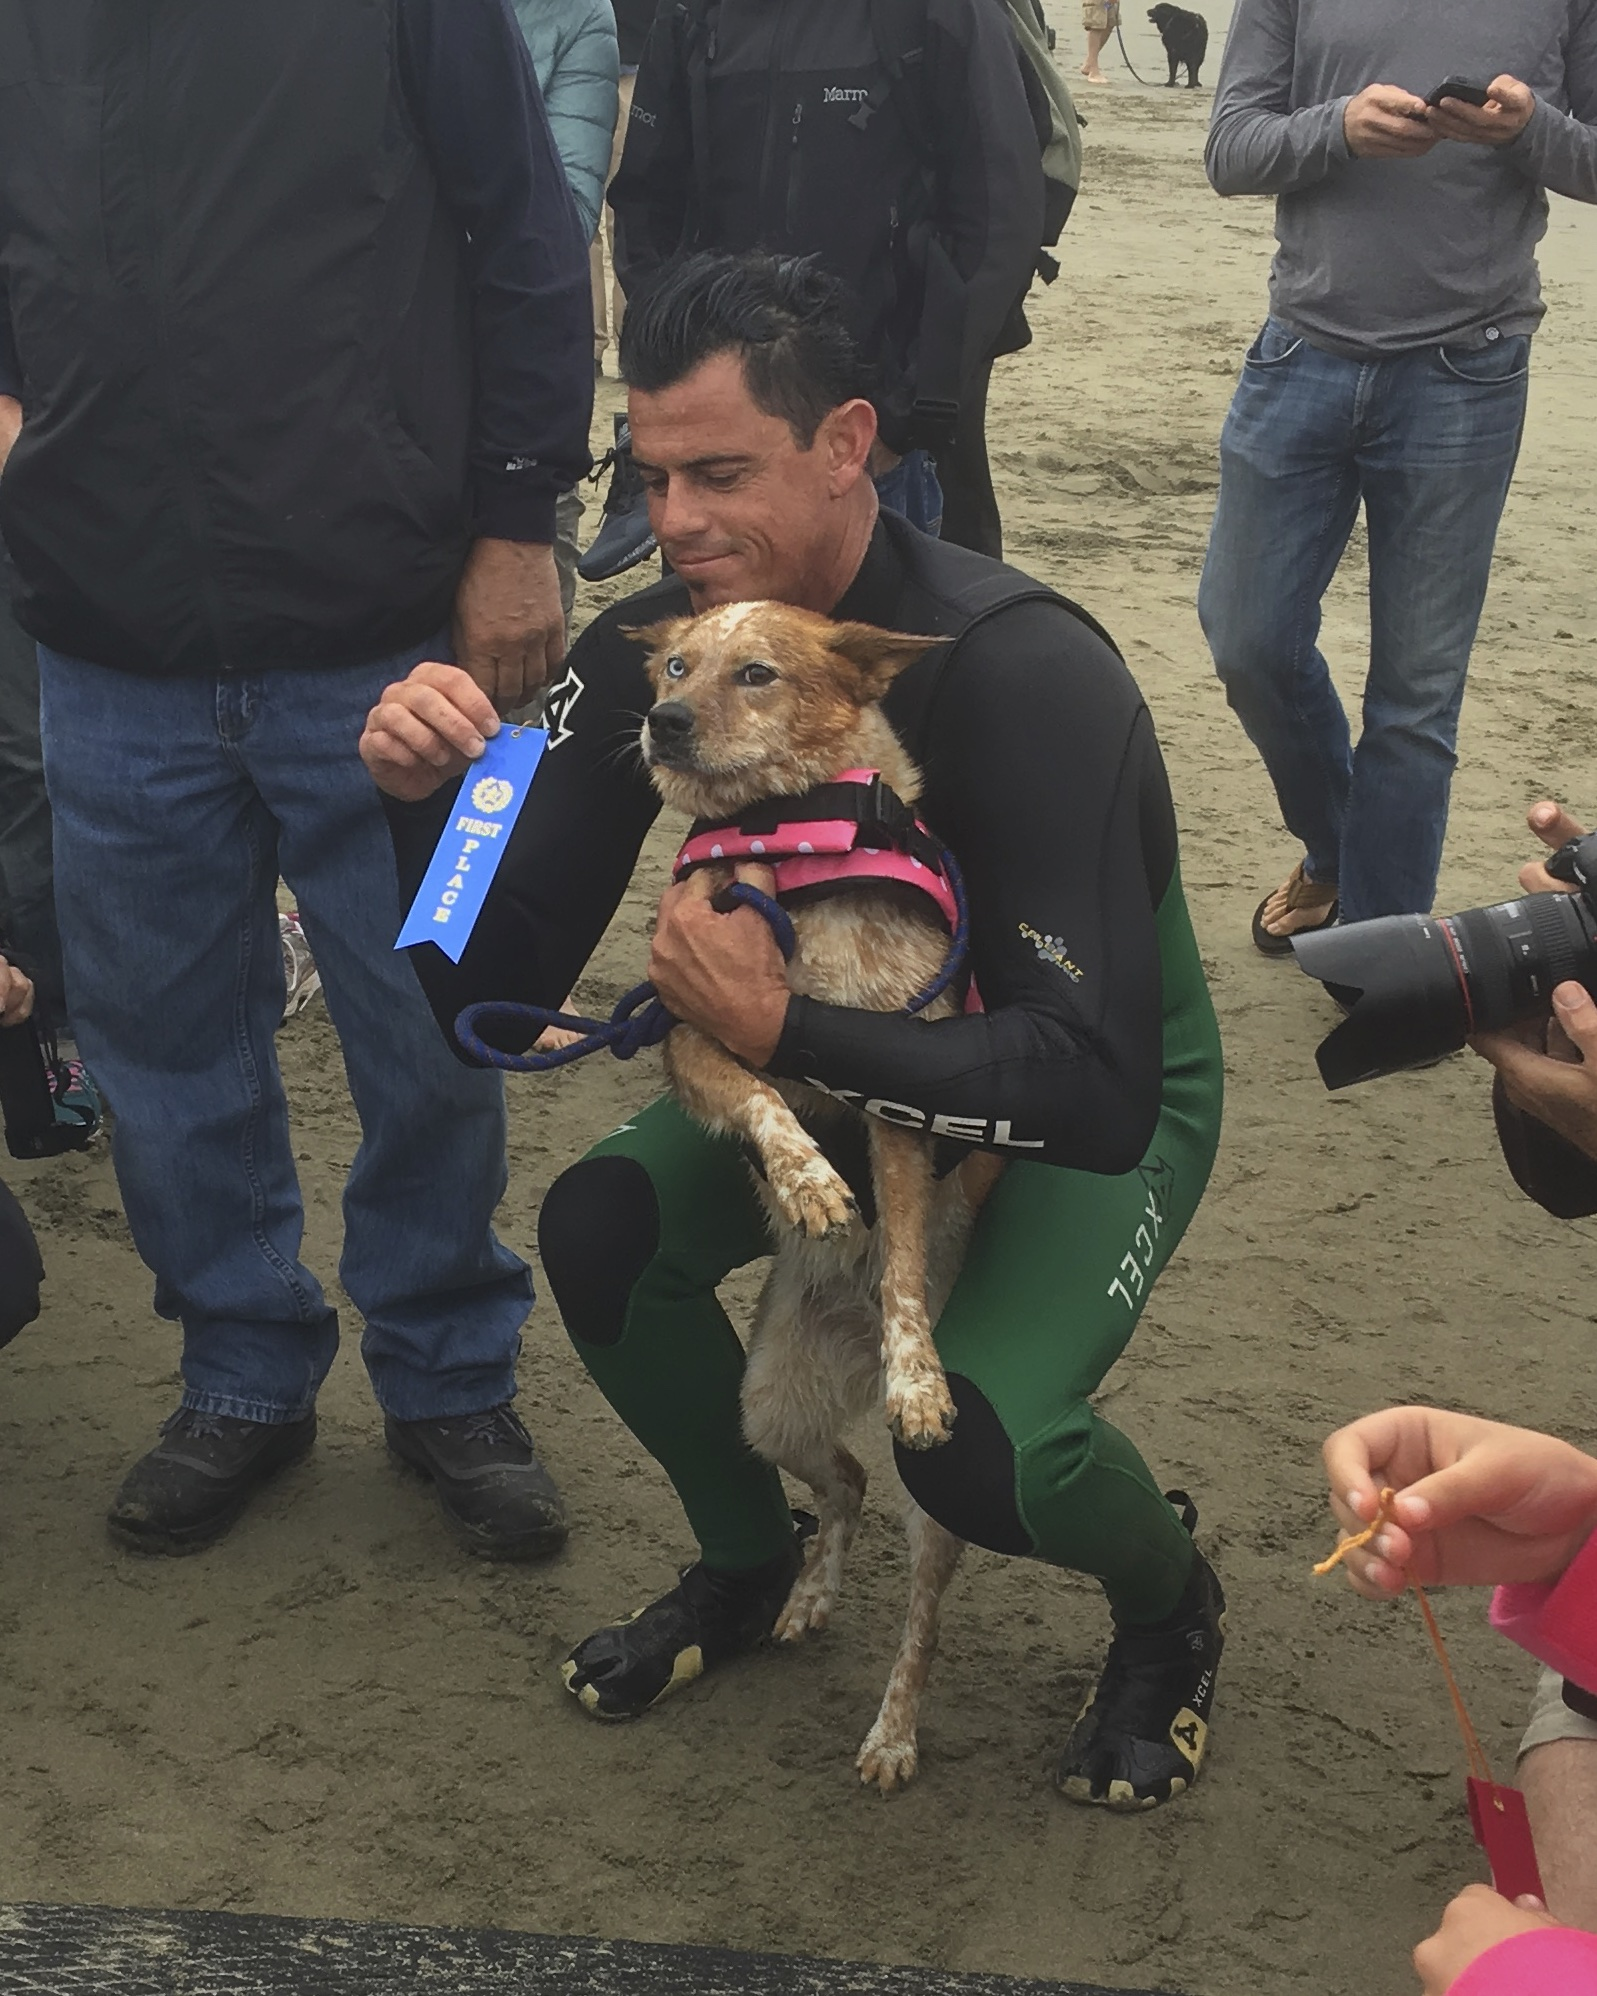 Australian Cattle Dog With Heterochromia In A Pink Coat Being Awarded A Blue Ribbon On A Beach